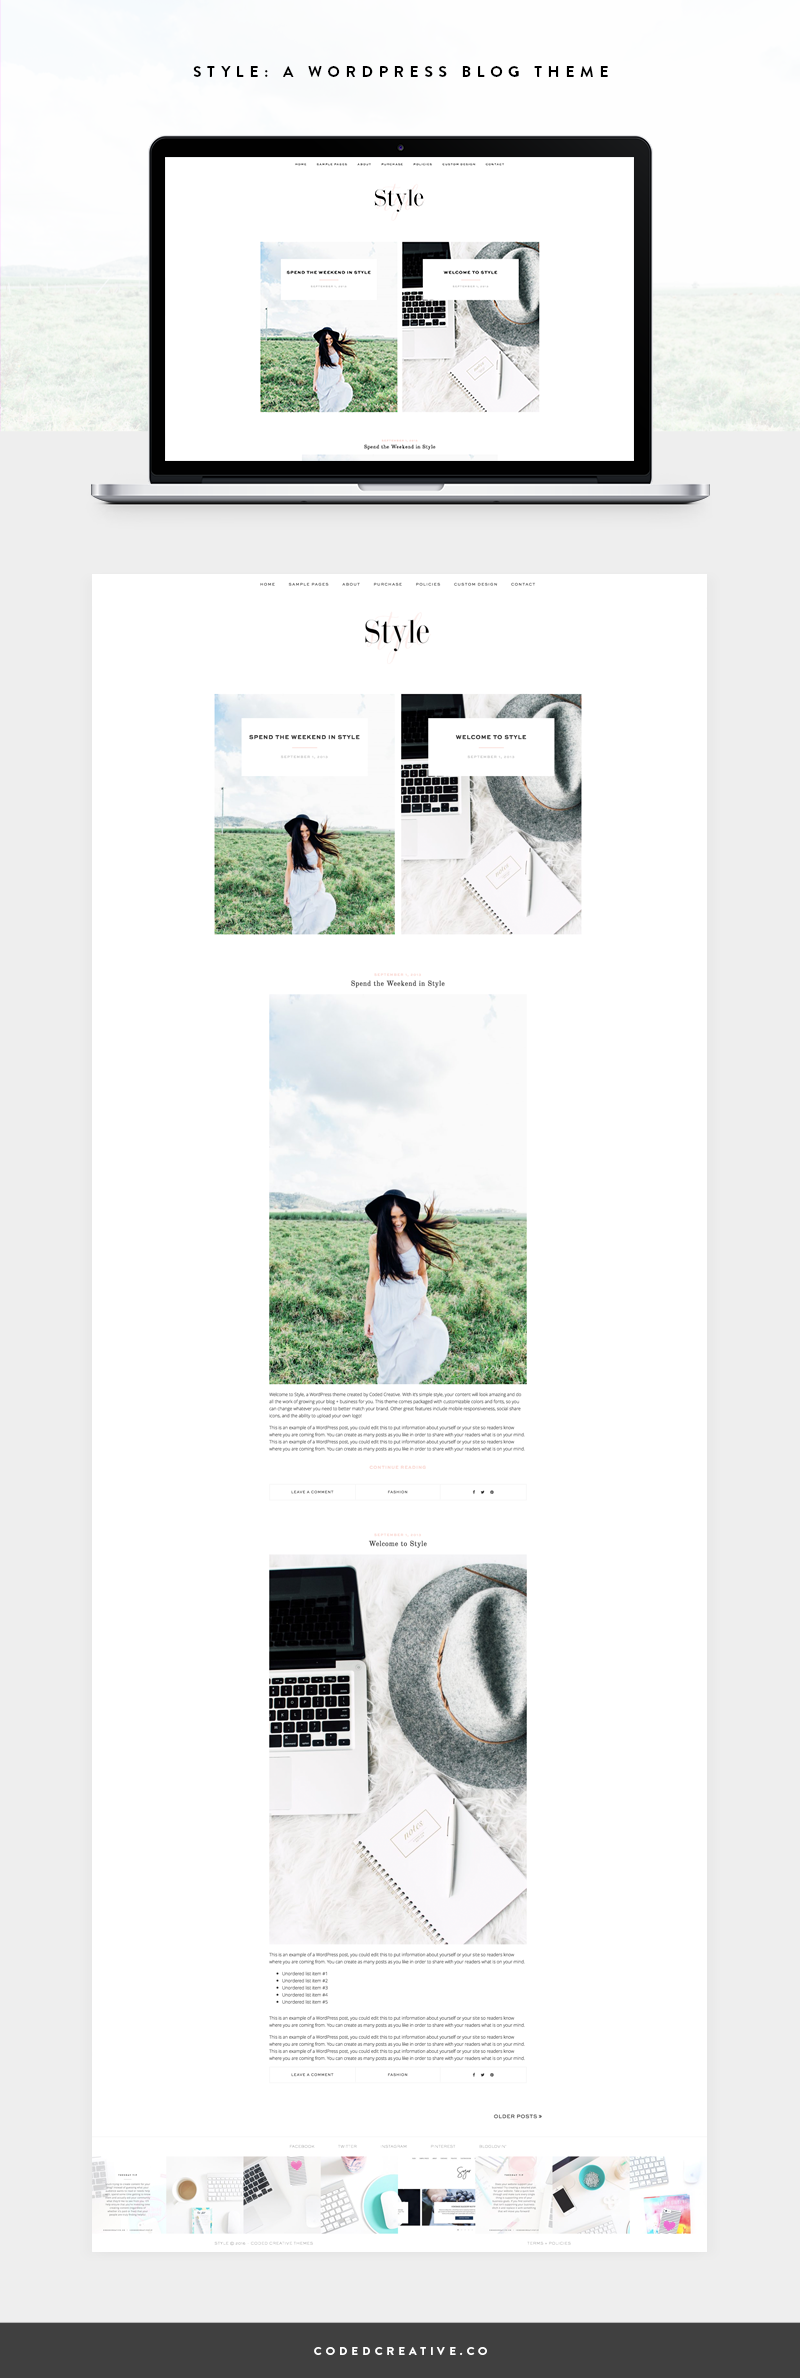 Style is a simple and feminine blog template for the WordPress platform. With its minimal style and no sidebar, your content will be front and center on your site and do the work of growing your blog for you.